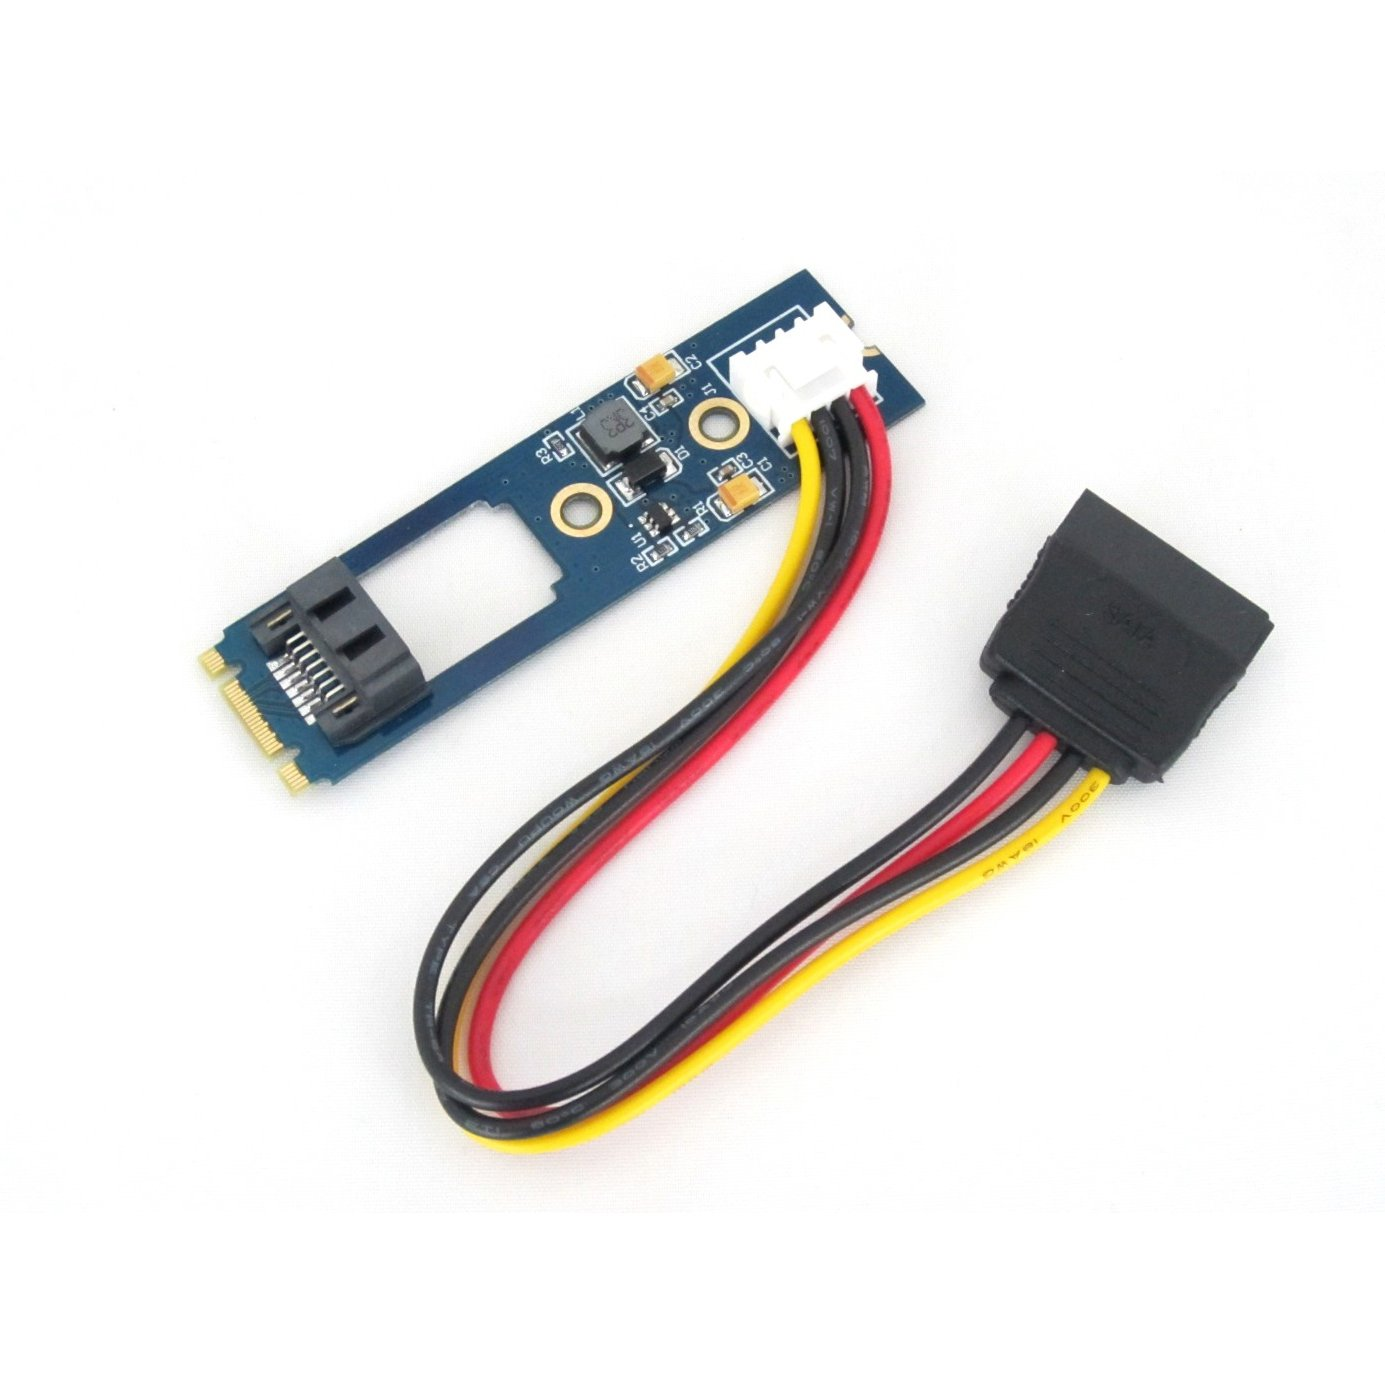 SATA SSD/HDD to M.2 NGFF Adapter Card with Power Cable